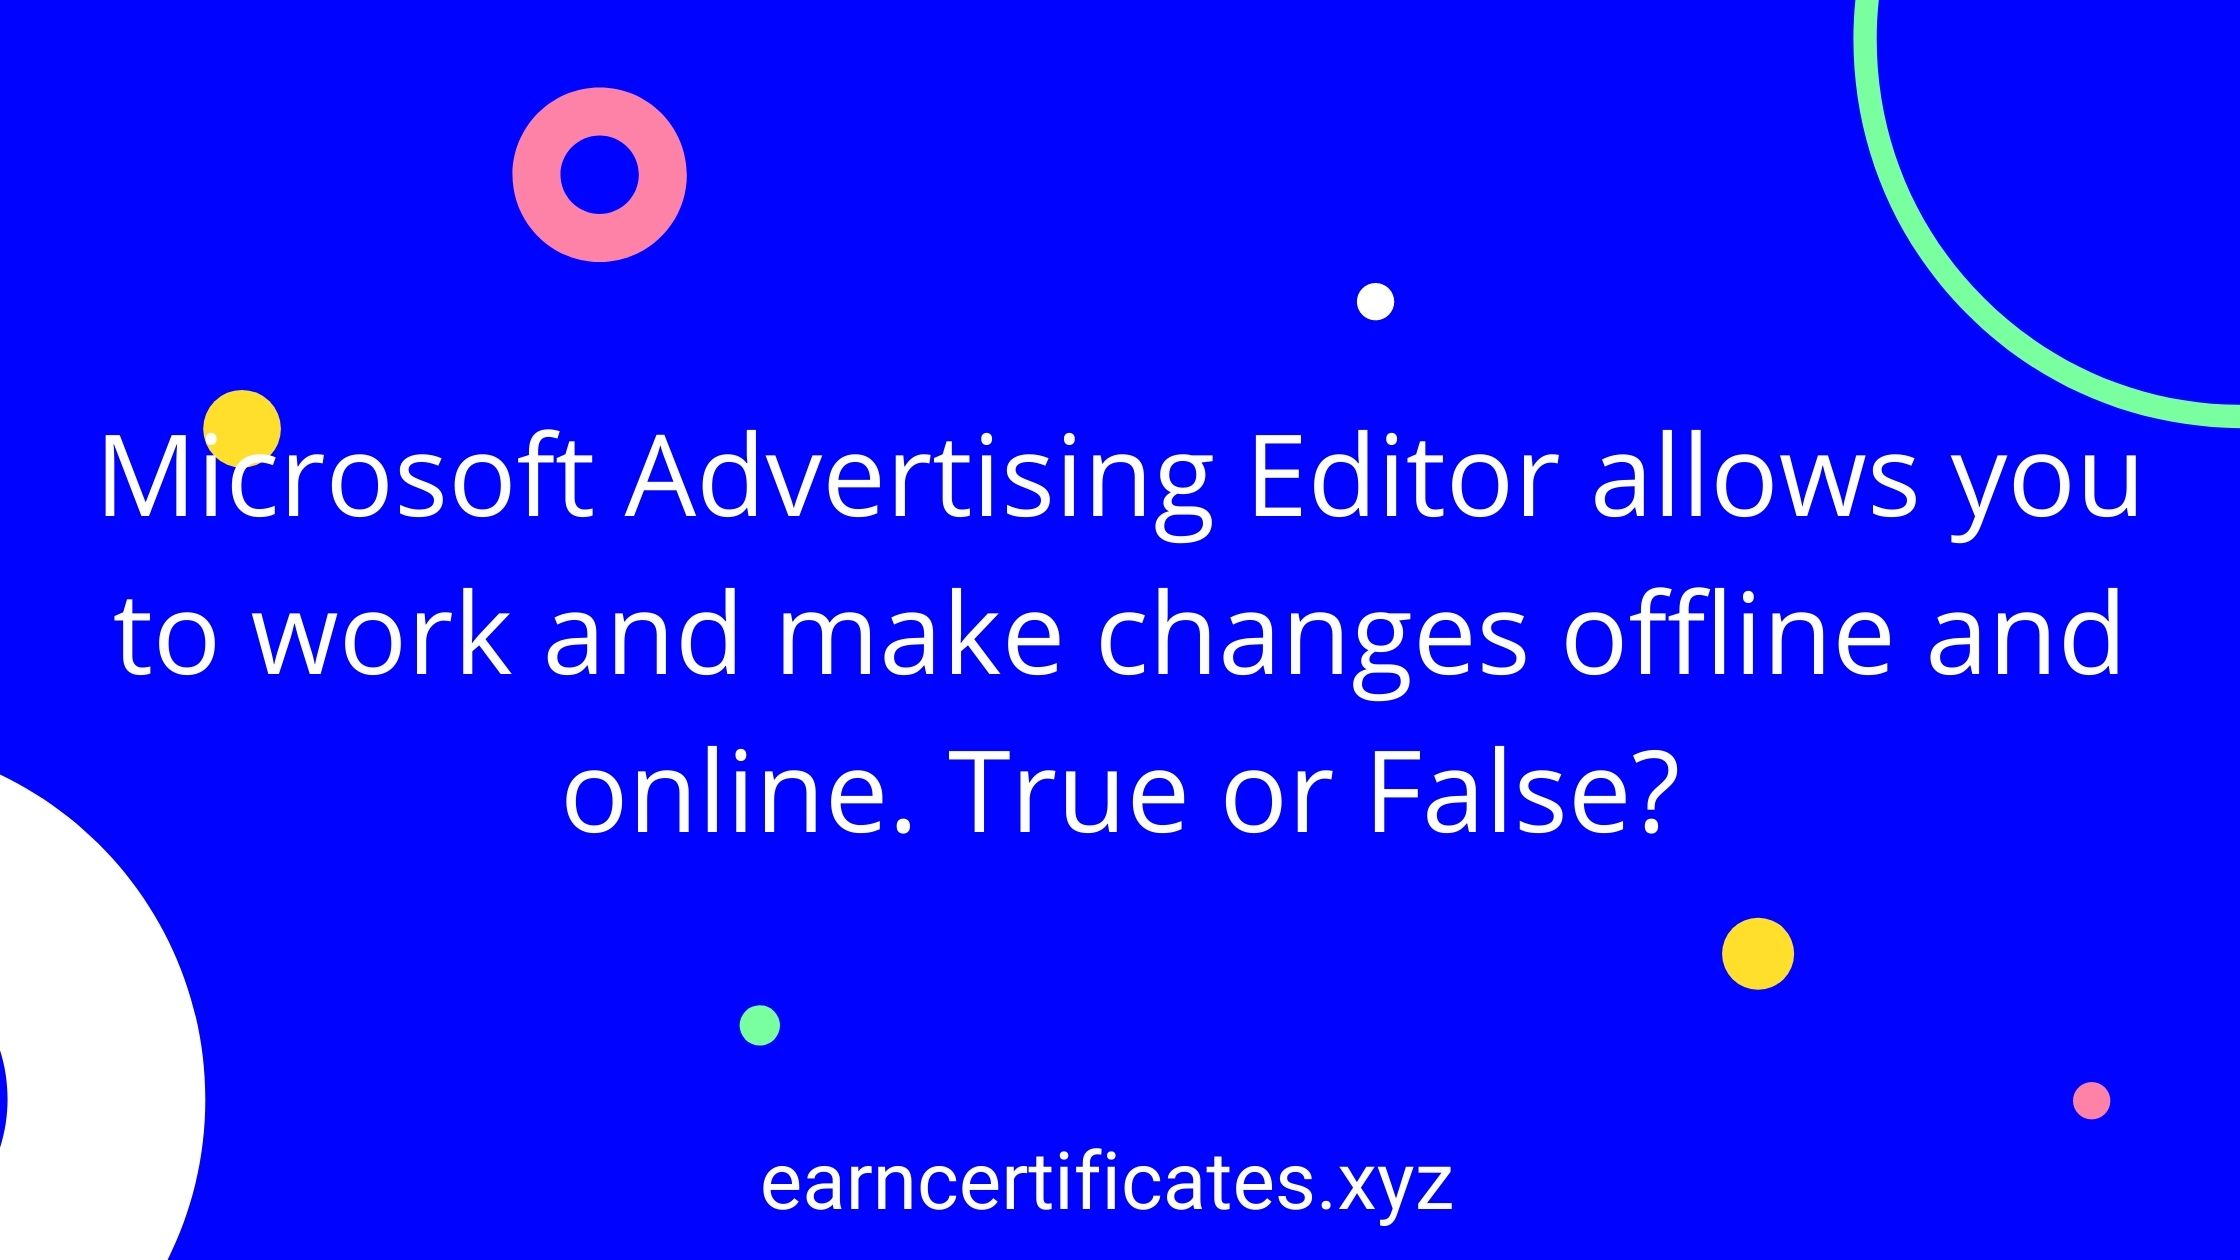 Microsoft Advertising Editor allows you to work and make changes offline and online. True or False?